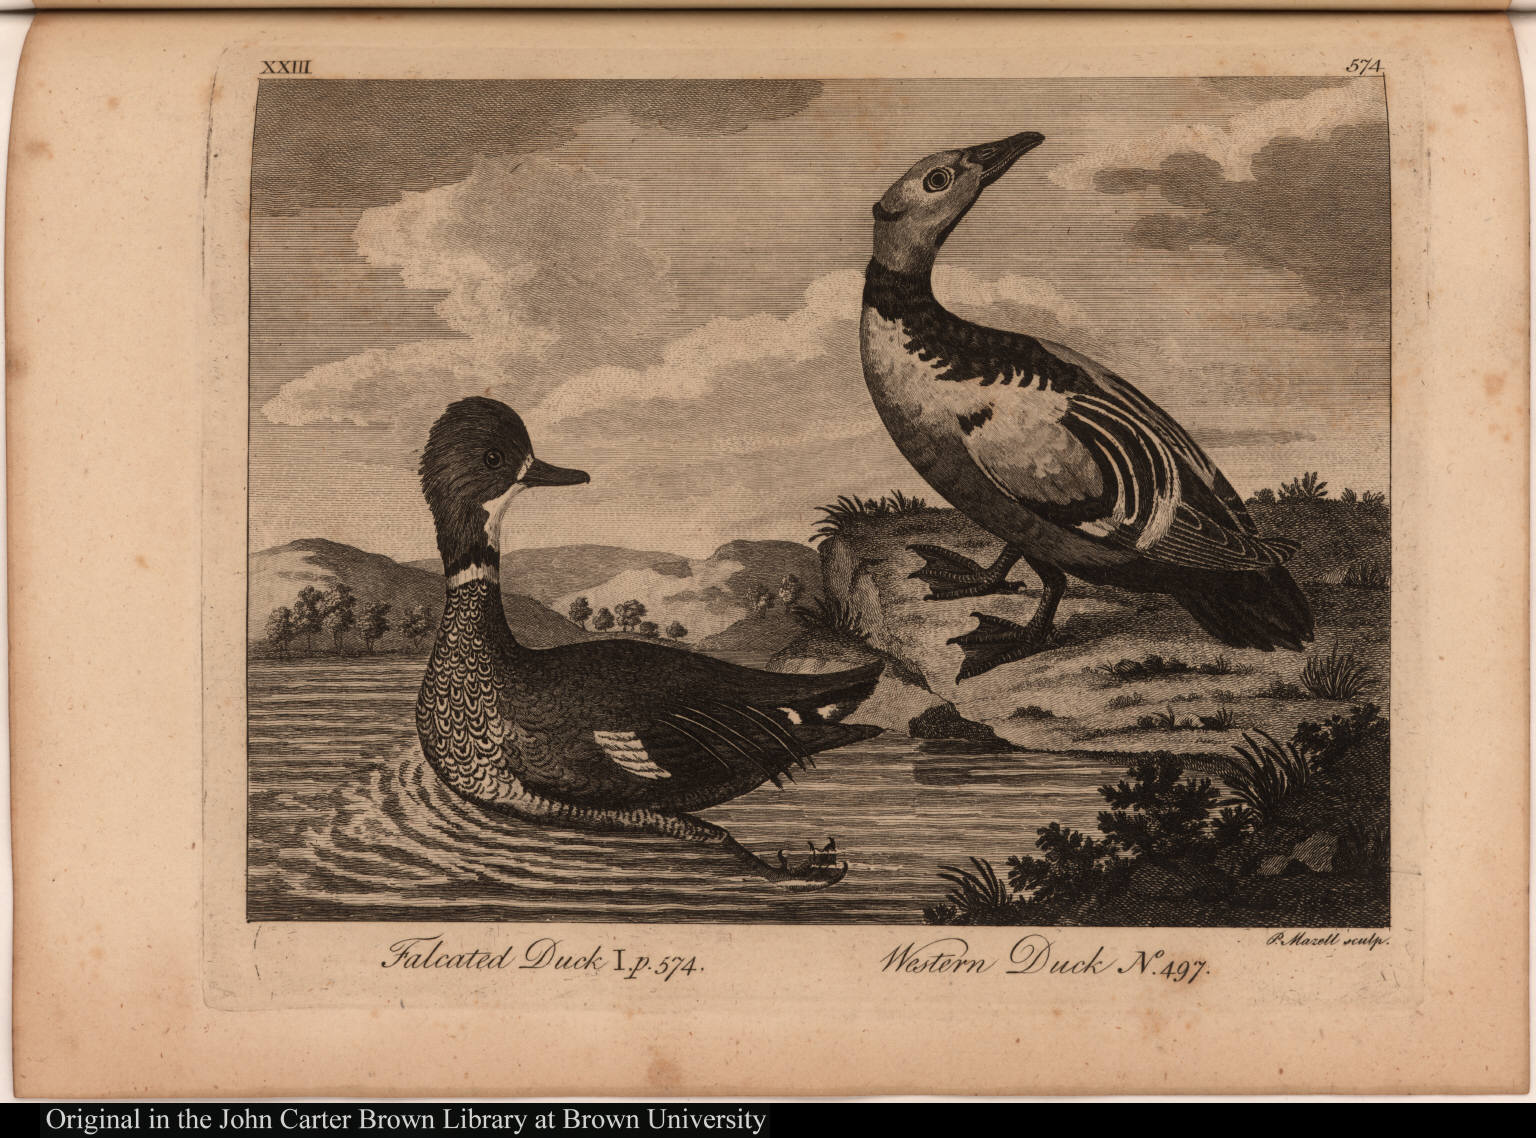 Falcated Duck I. p. 574.; Western Duck No. 497.